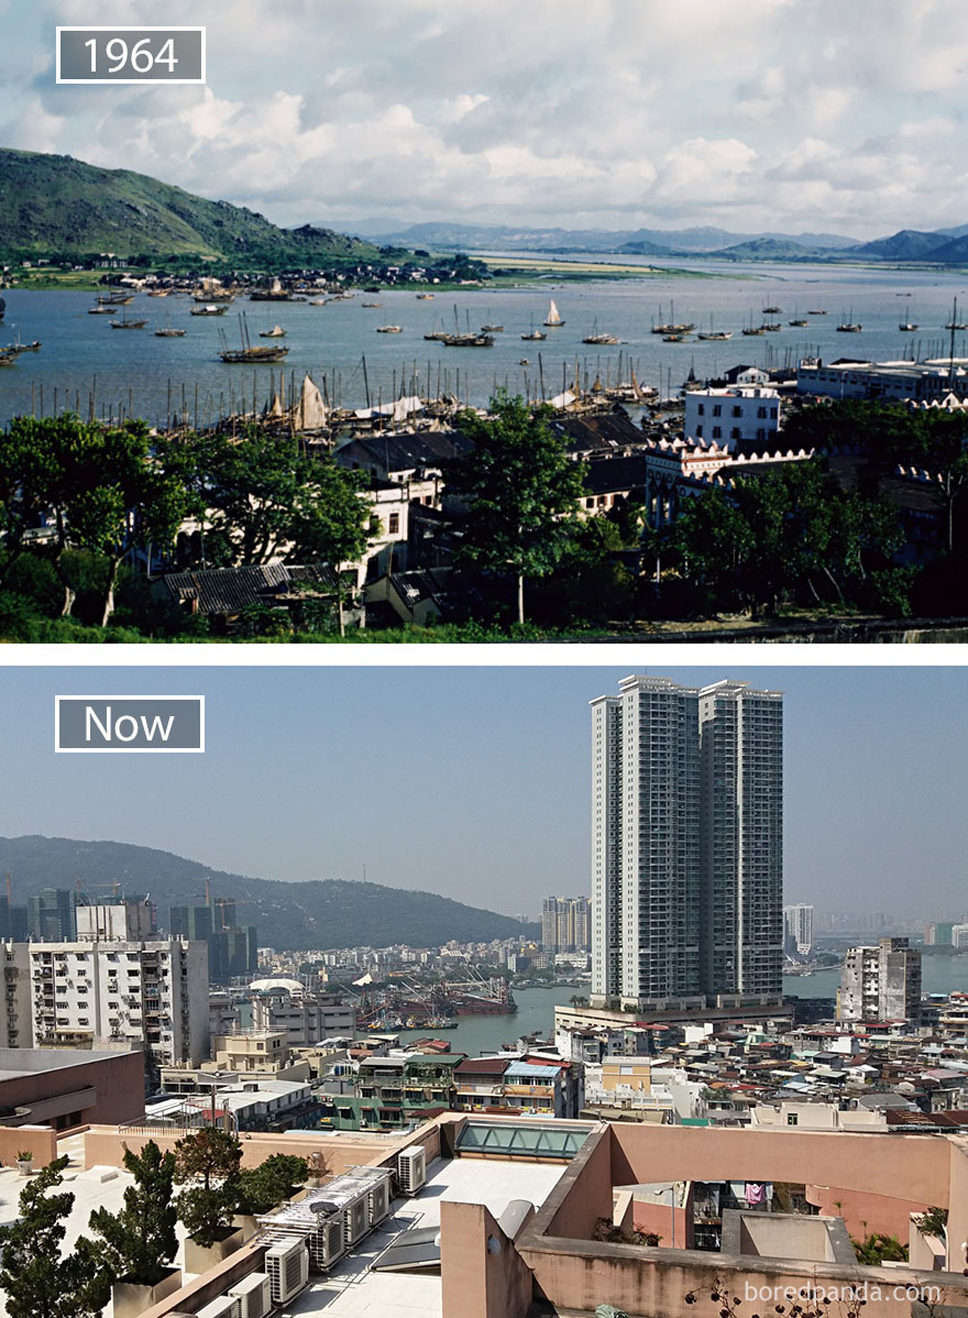 how-famous-city-changed-timelapse-evolution-before-after-28-577cfc9278177__880